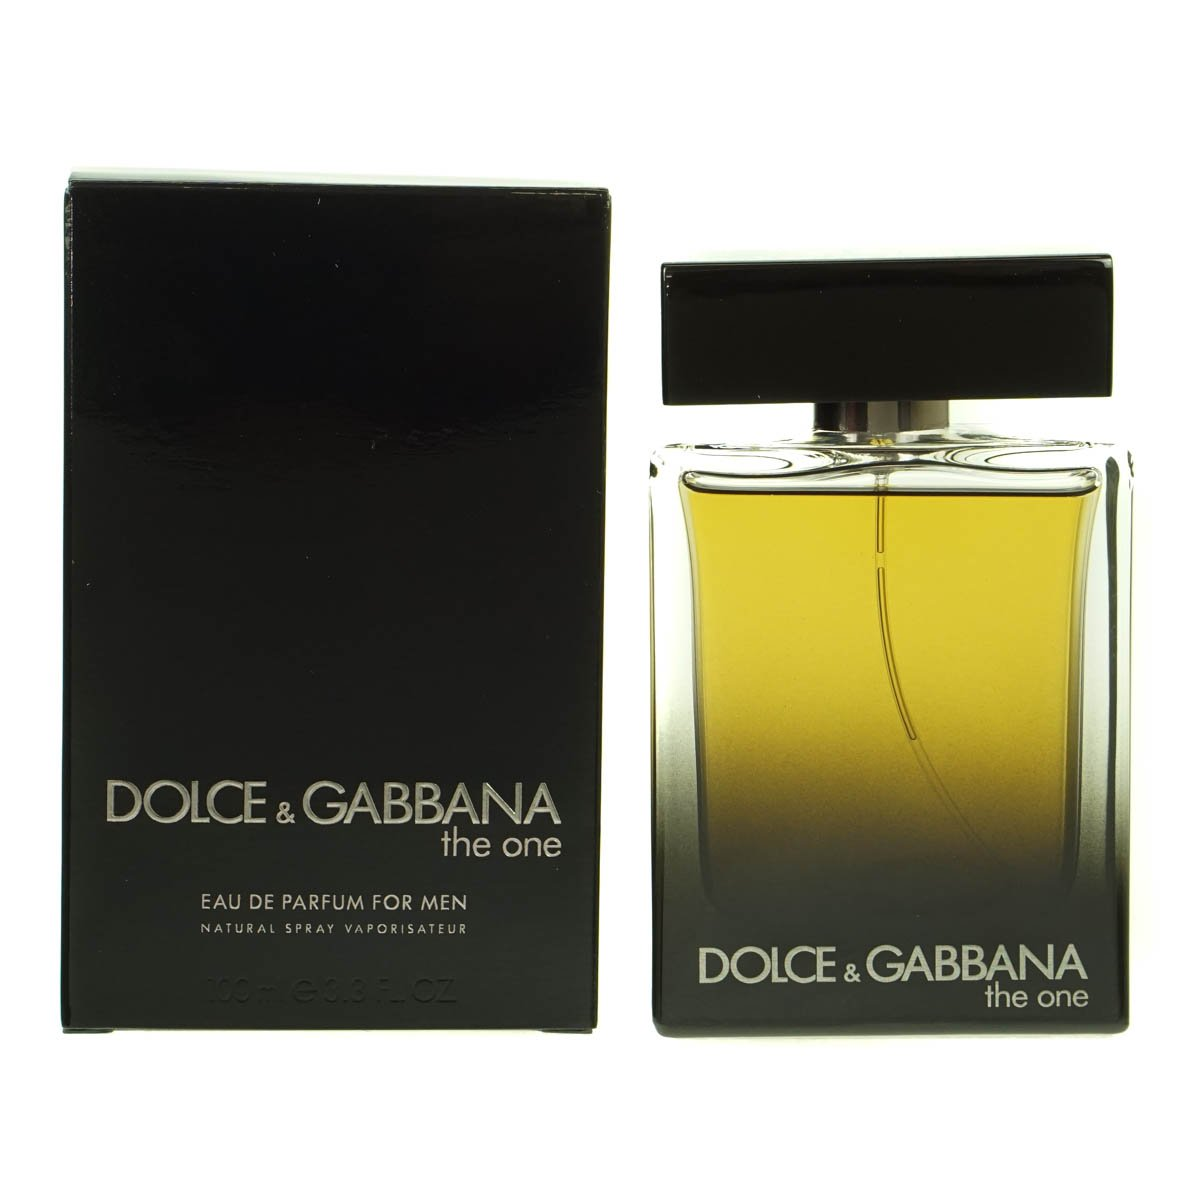 Dolce & Gabbana The One For Men –  100 ml Perfume, Water. 61224